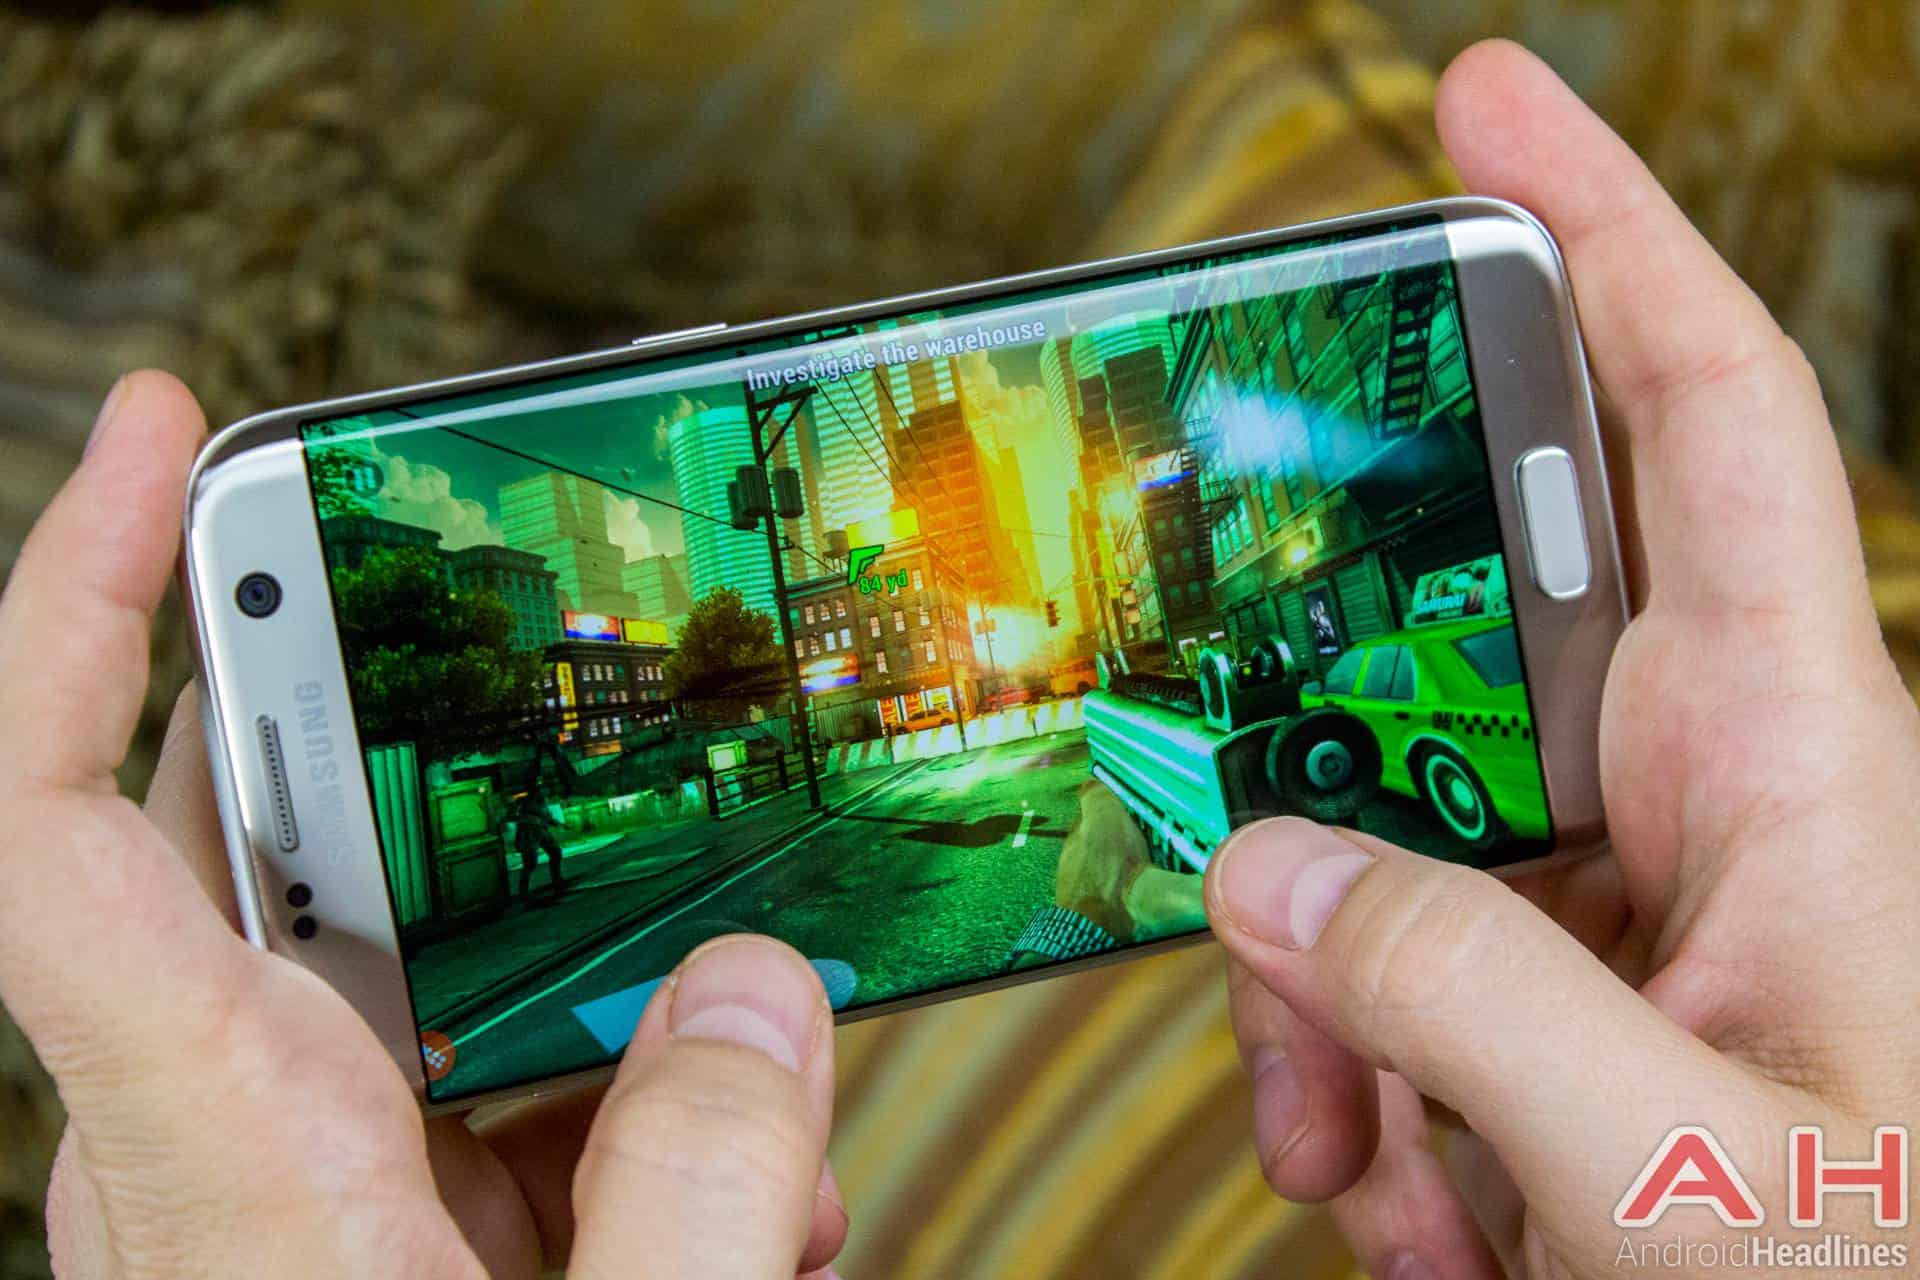 Samsung Galaxy S7 Edge AH NS performance gaming